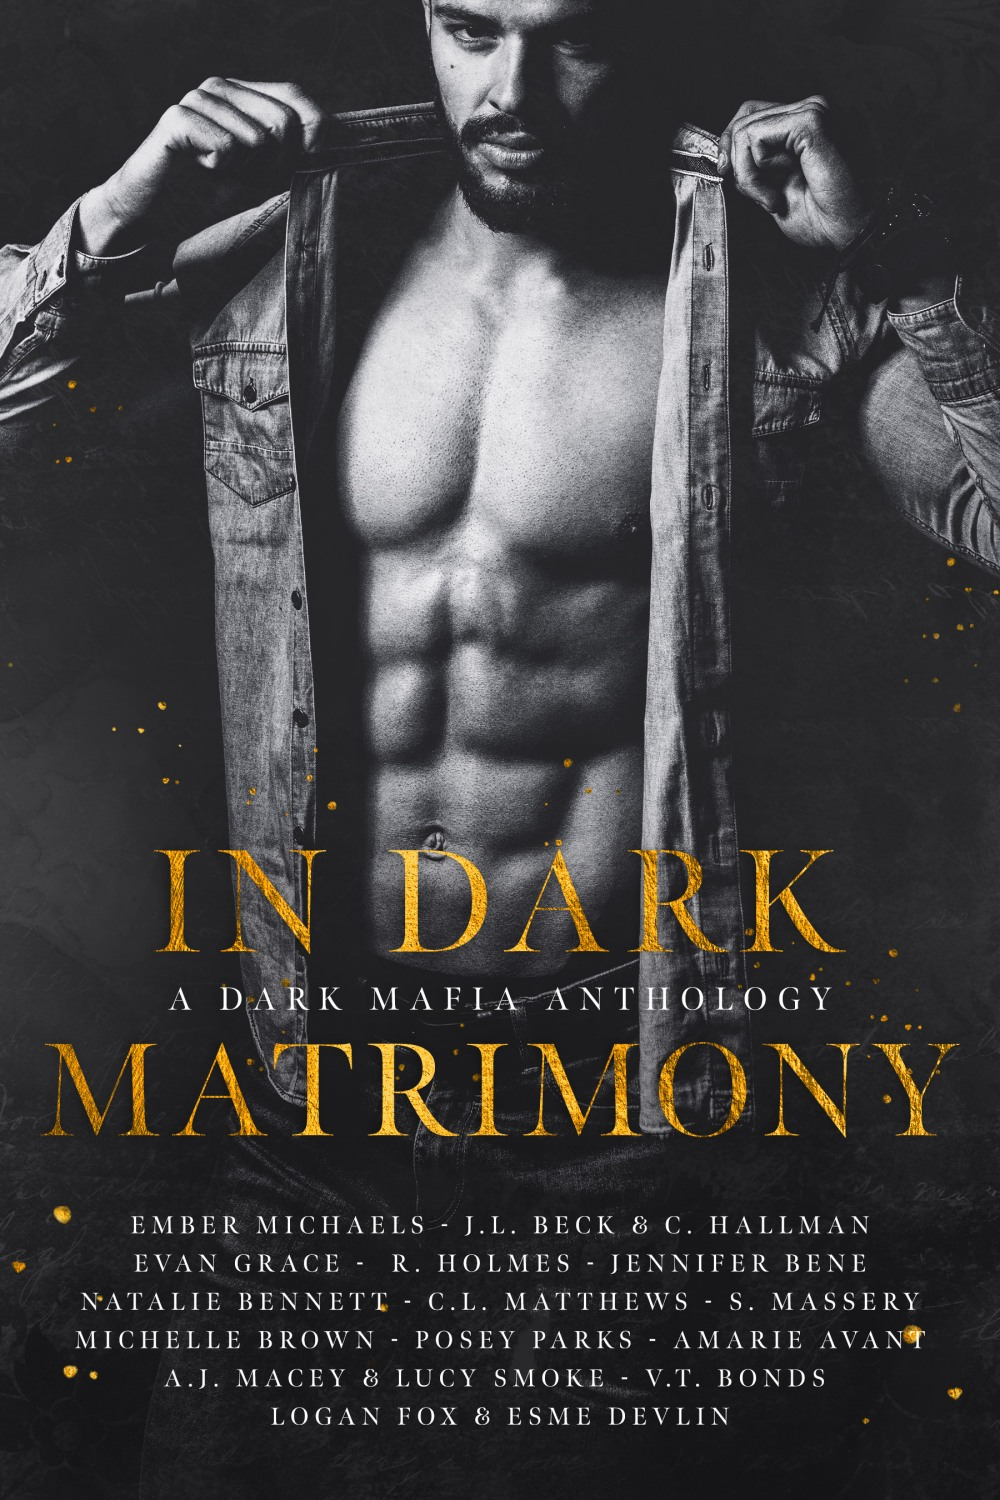 In Dark Matrimony - ebook